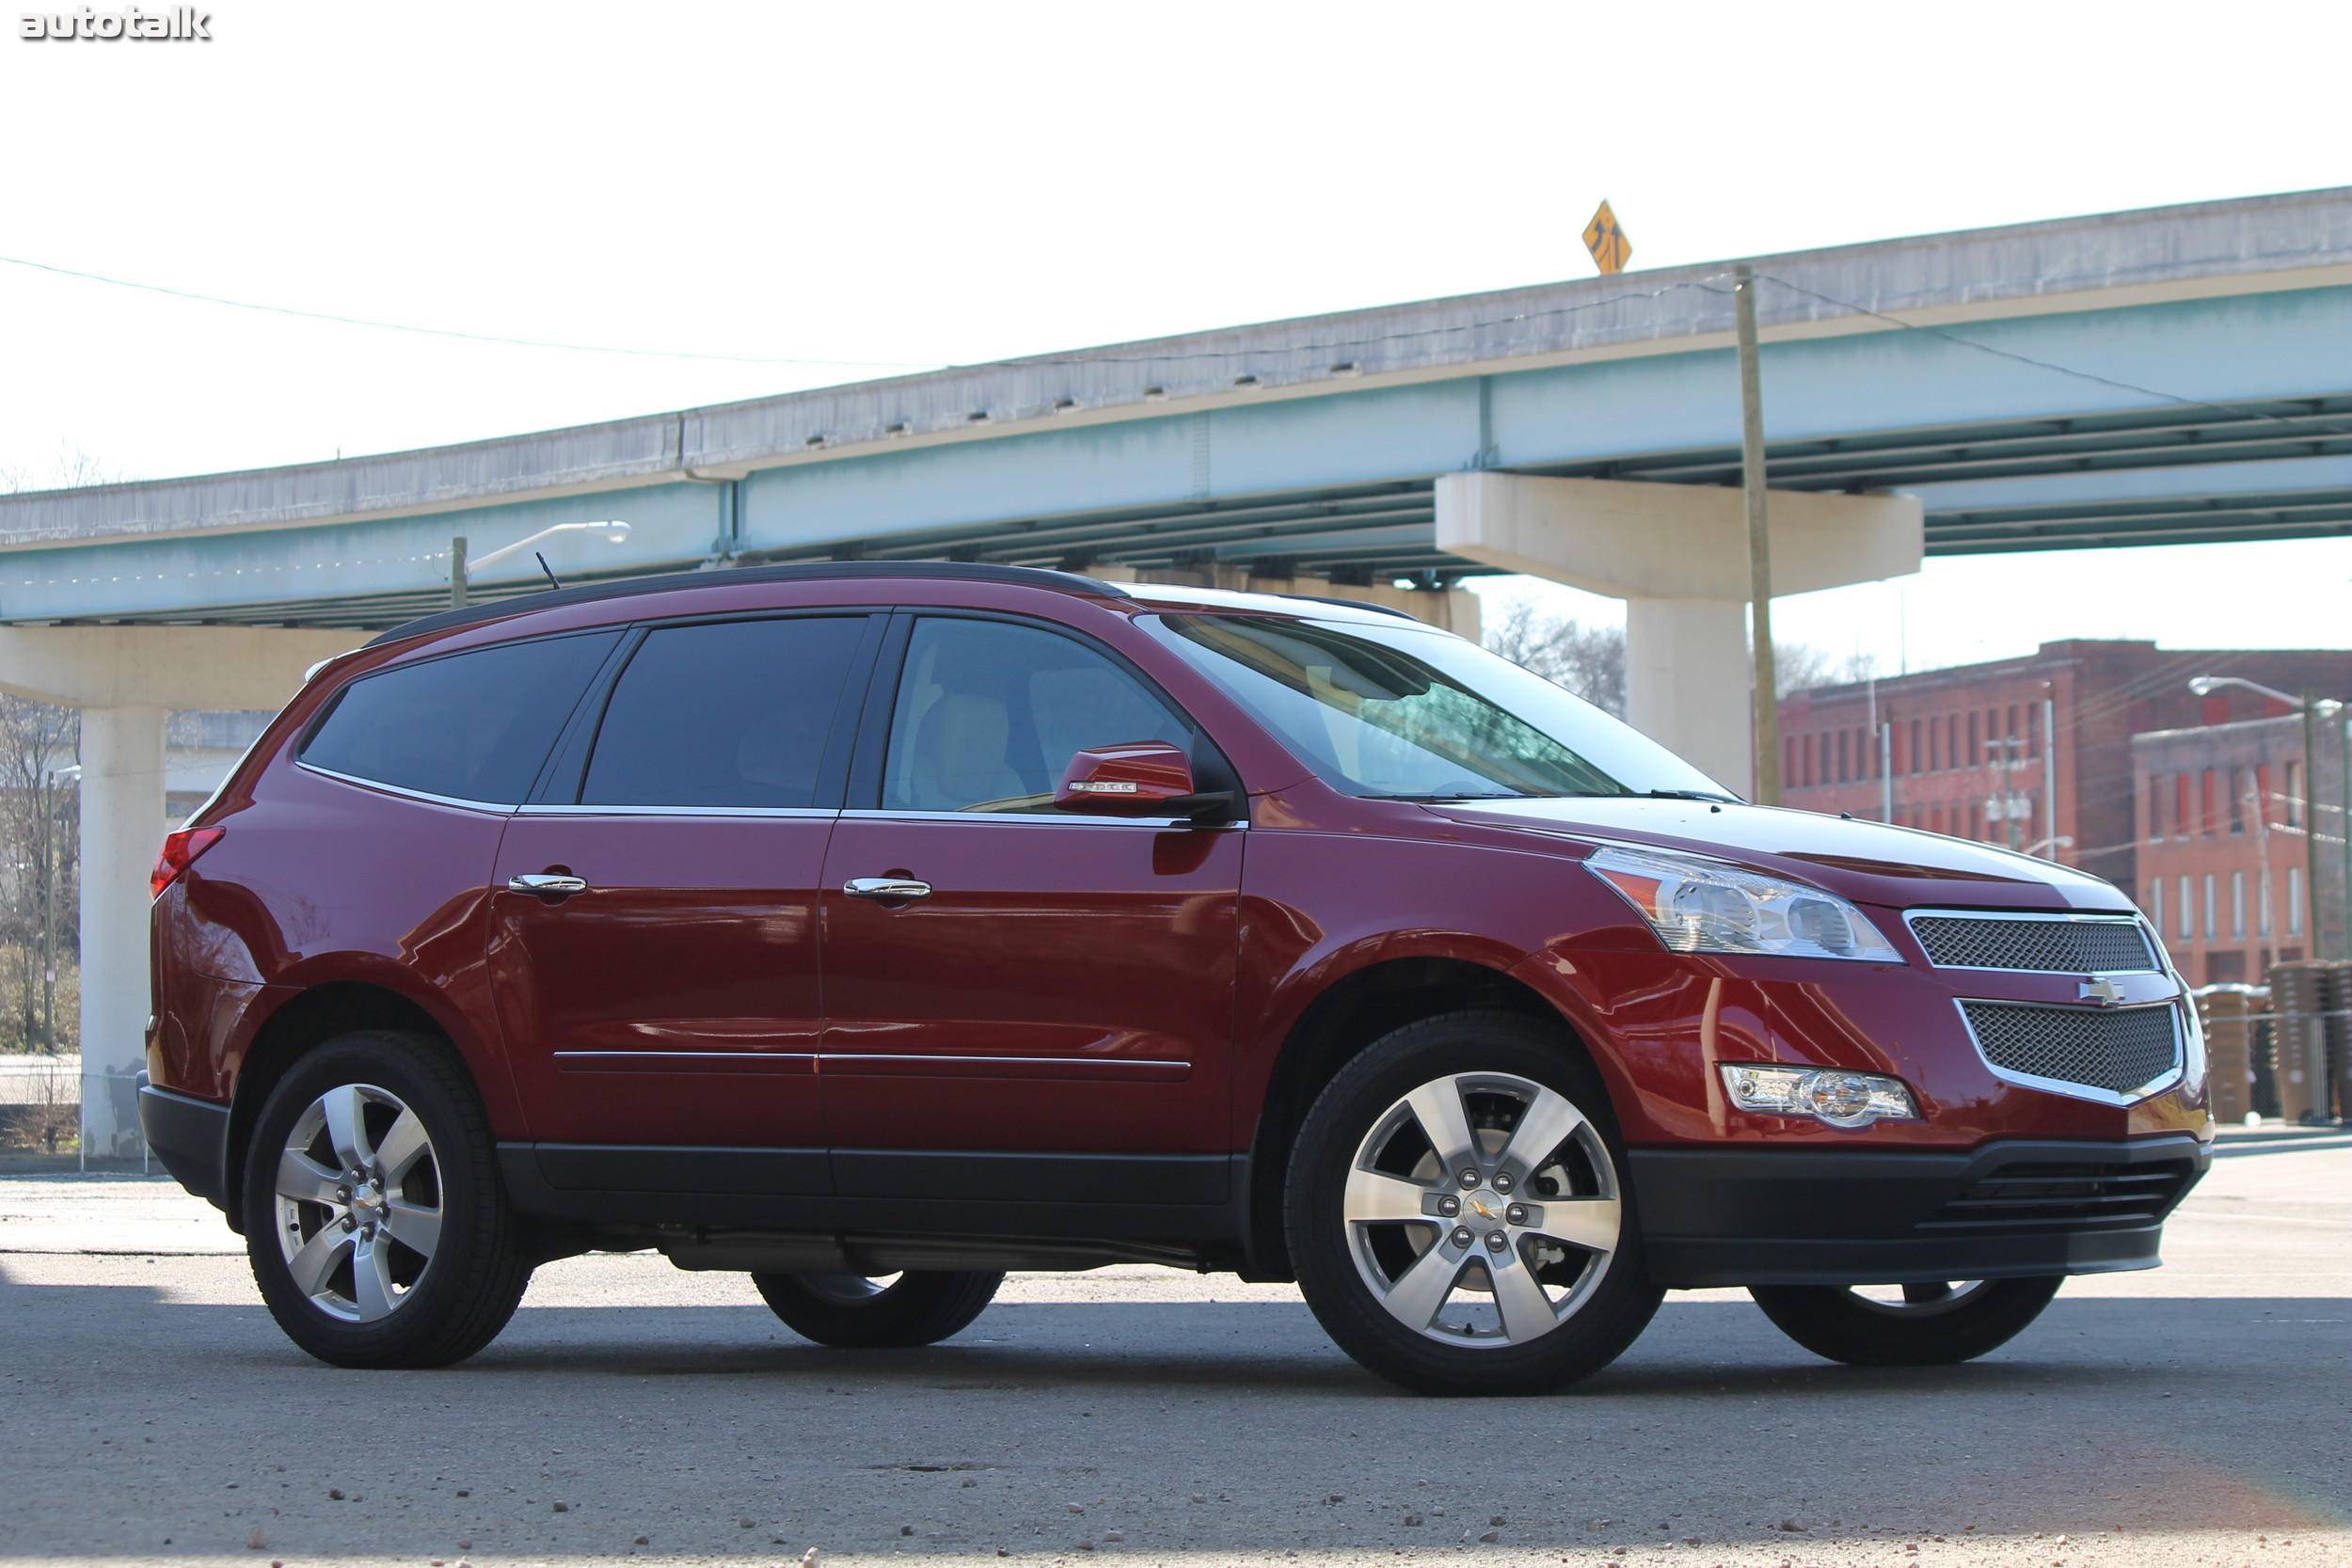 2008 chevy traverse reviews autos post. Black Bedroom Furniture Sets. Home Design Ideas